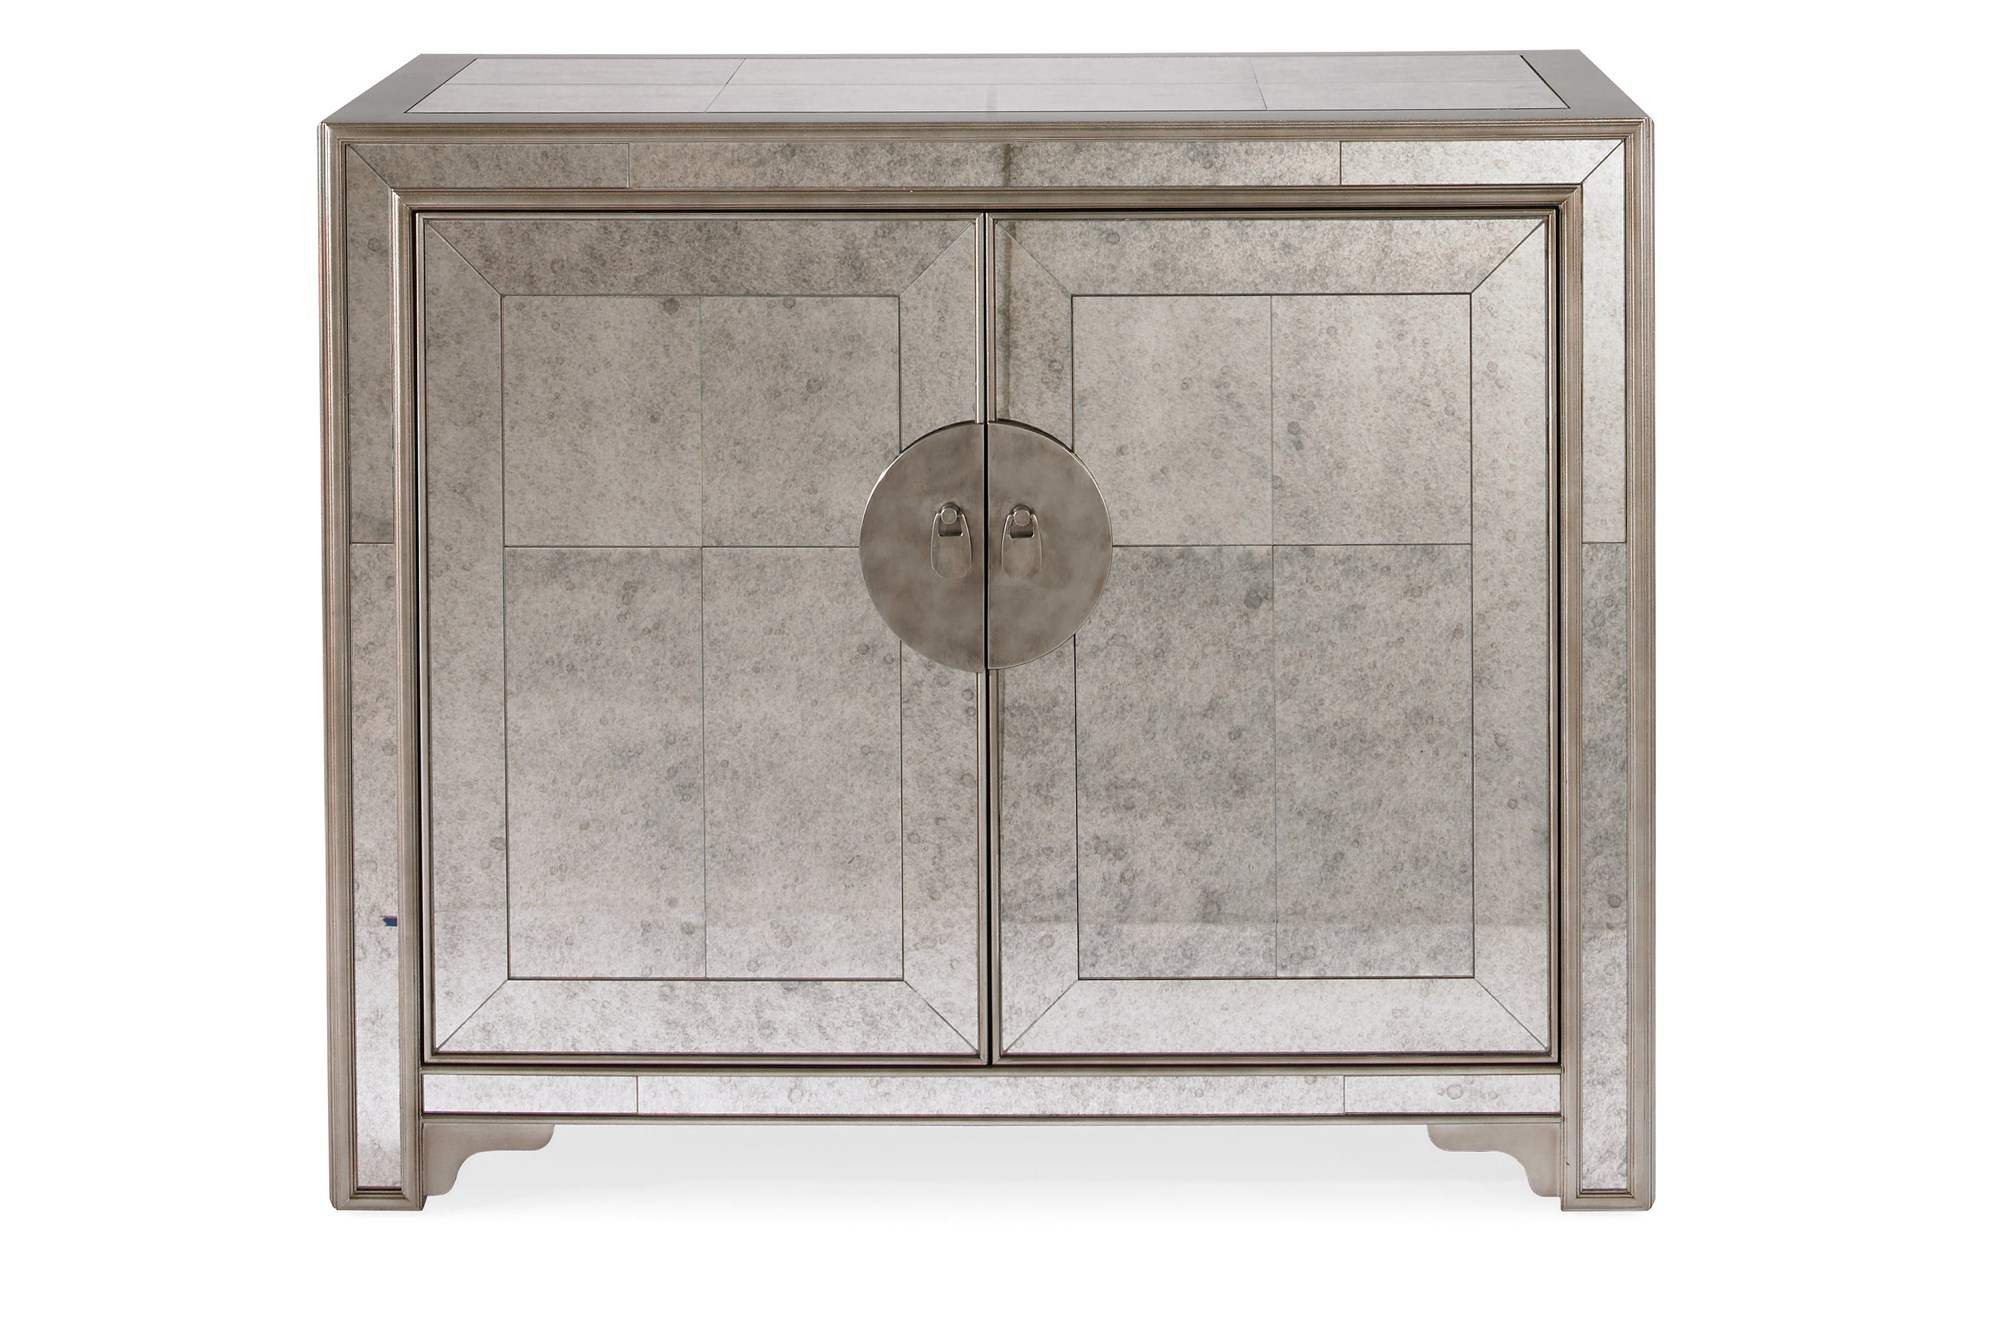 Shantou mirror door chest dressers chests bedroom robb stucky for Robb and stucky bedroom furniture